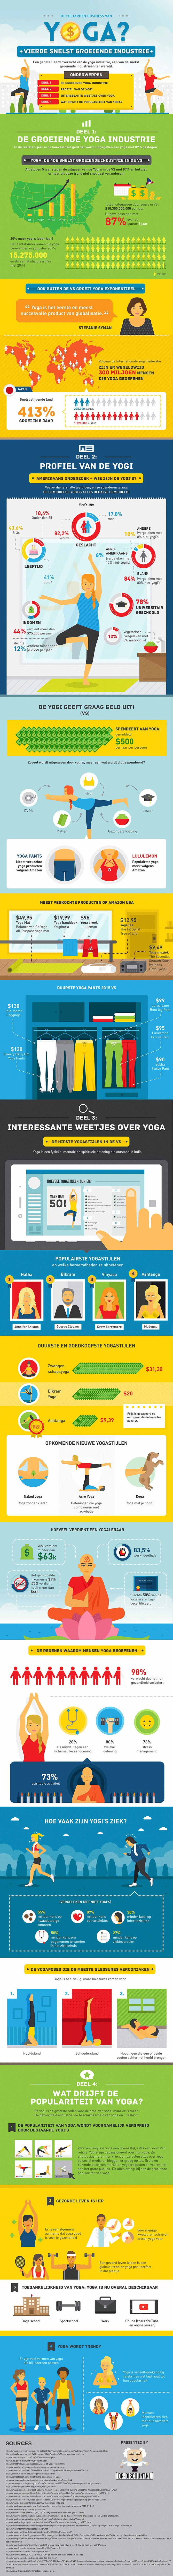 Infographic De miljarden business van yoga